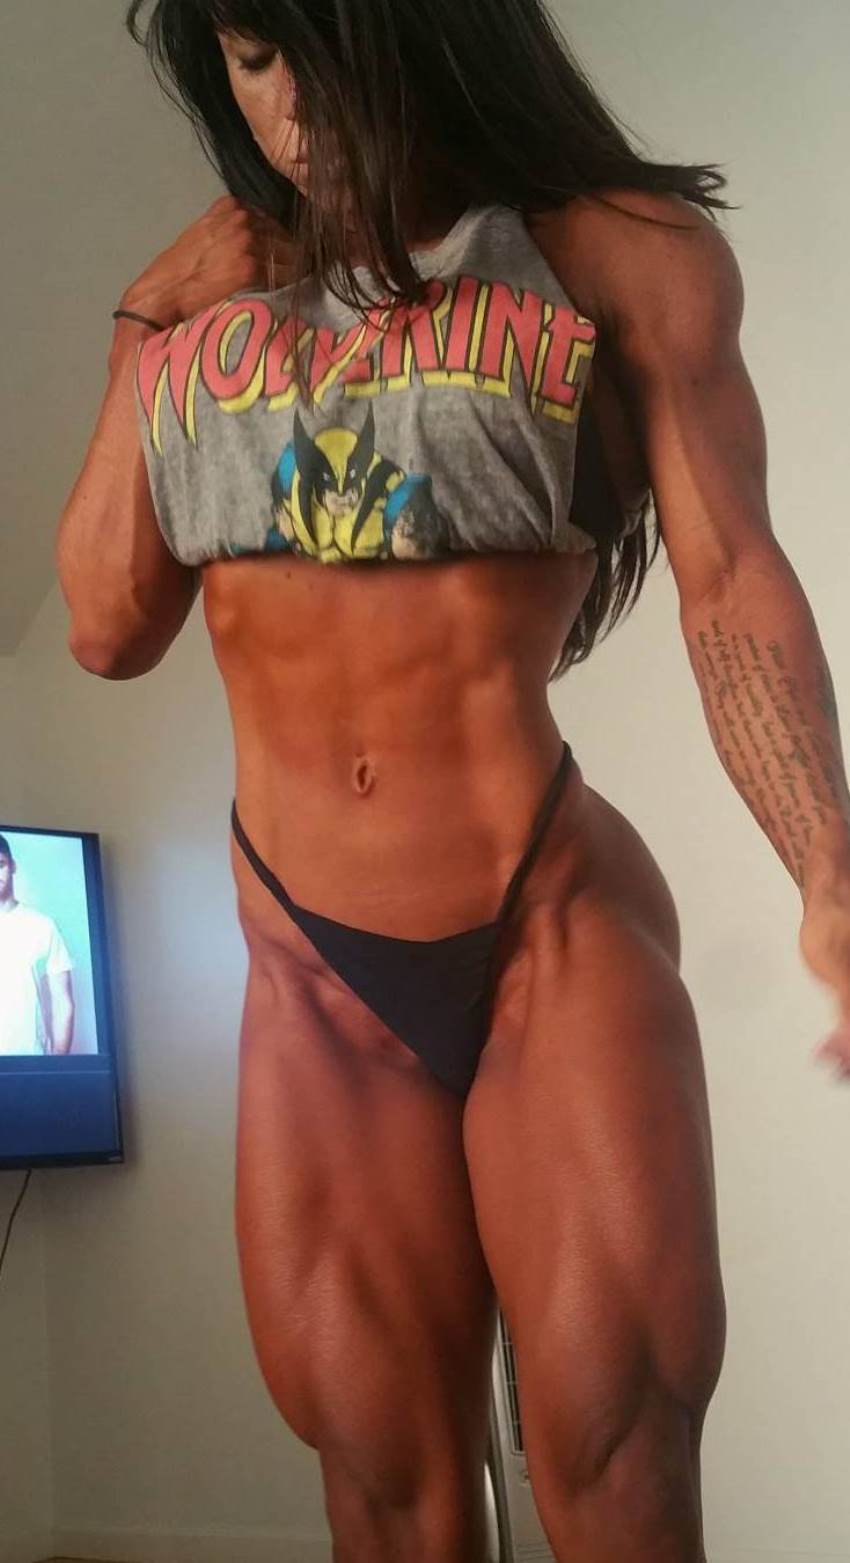 Rachelle Carter revealing her lean abs and legs